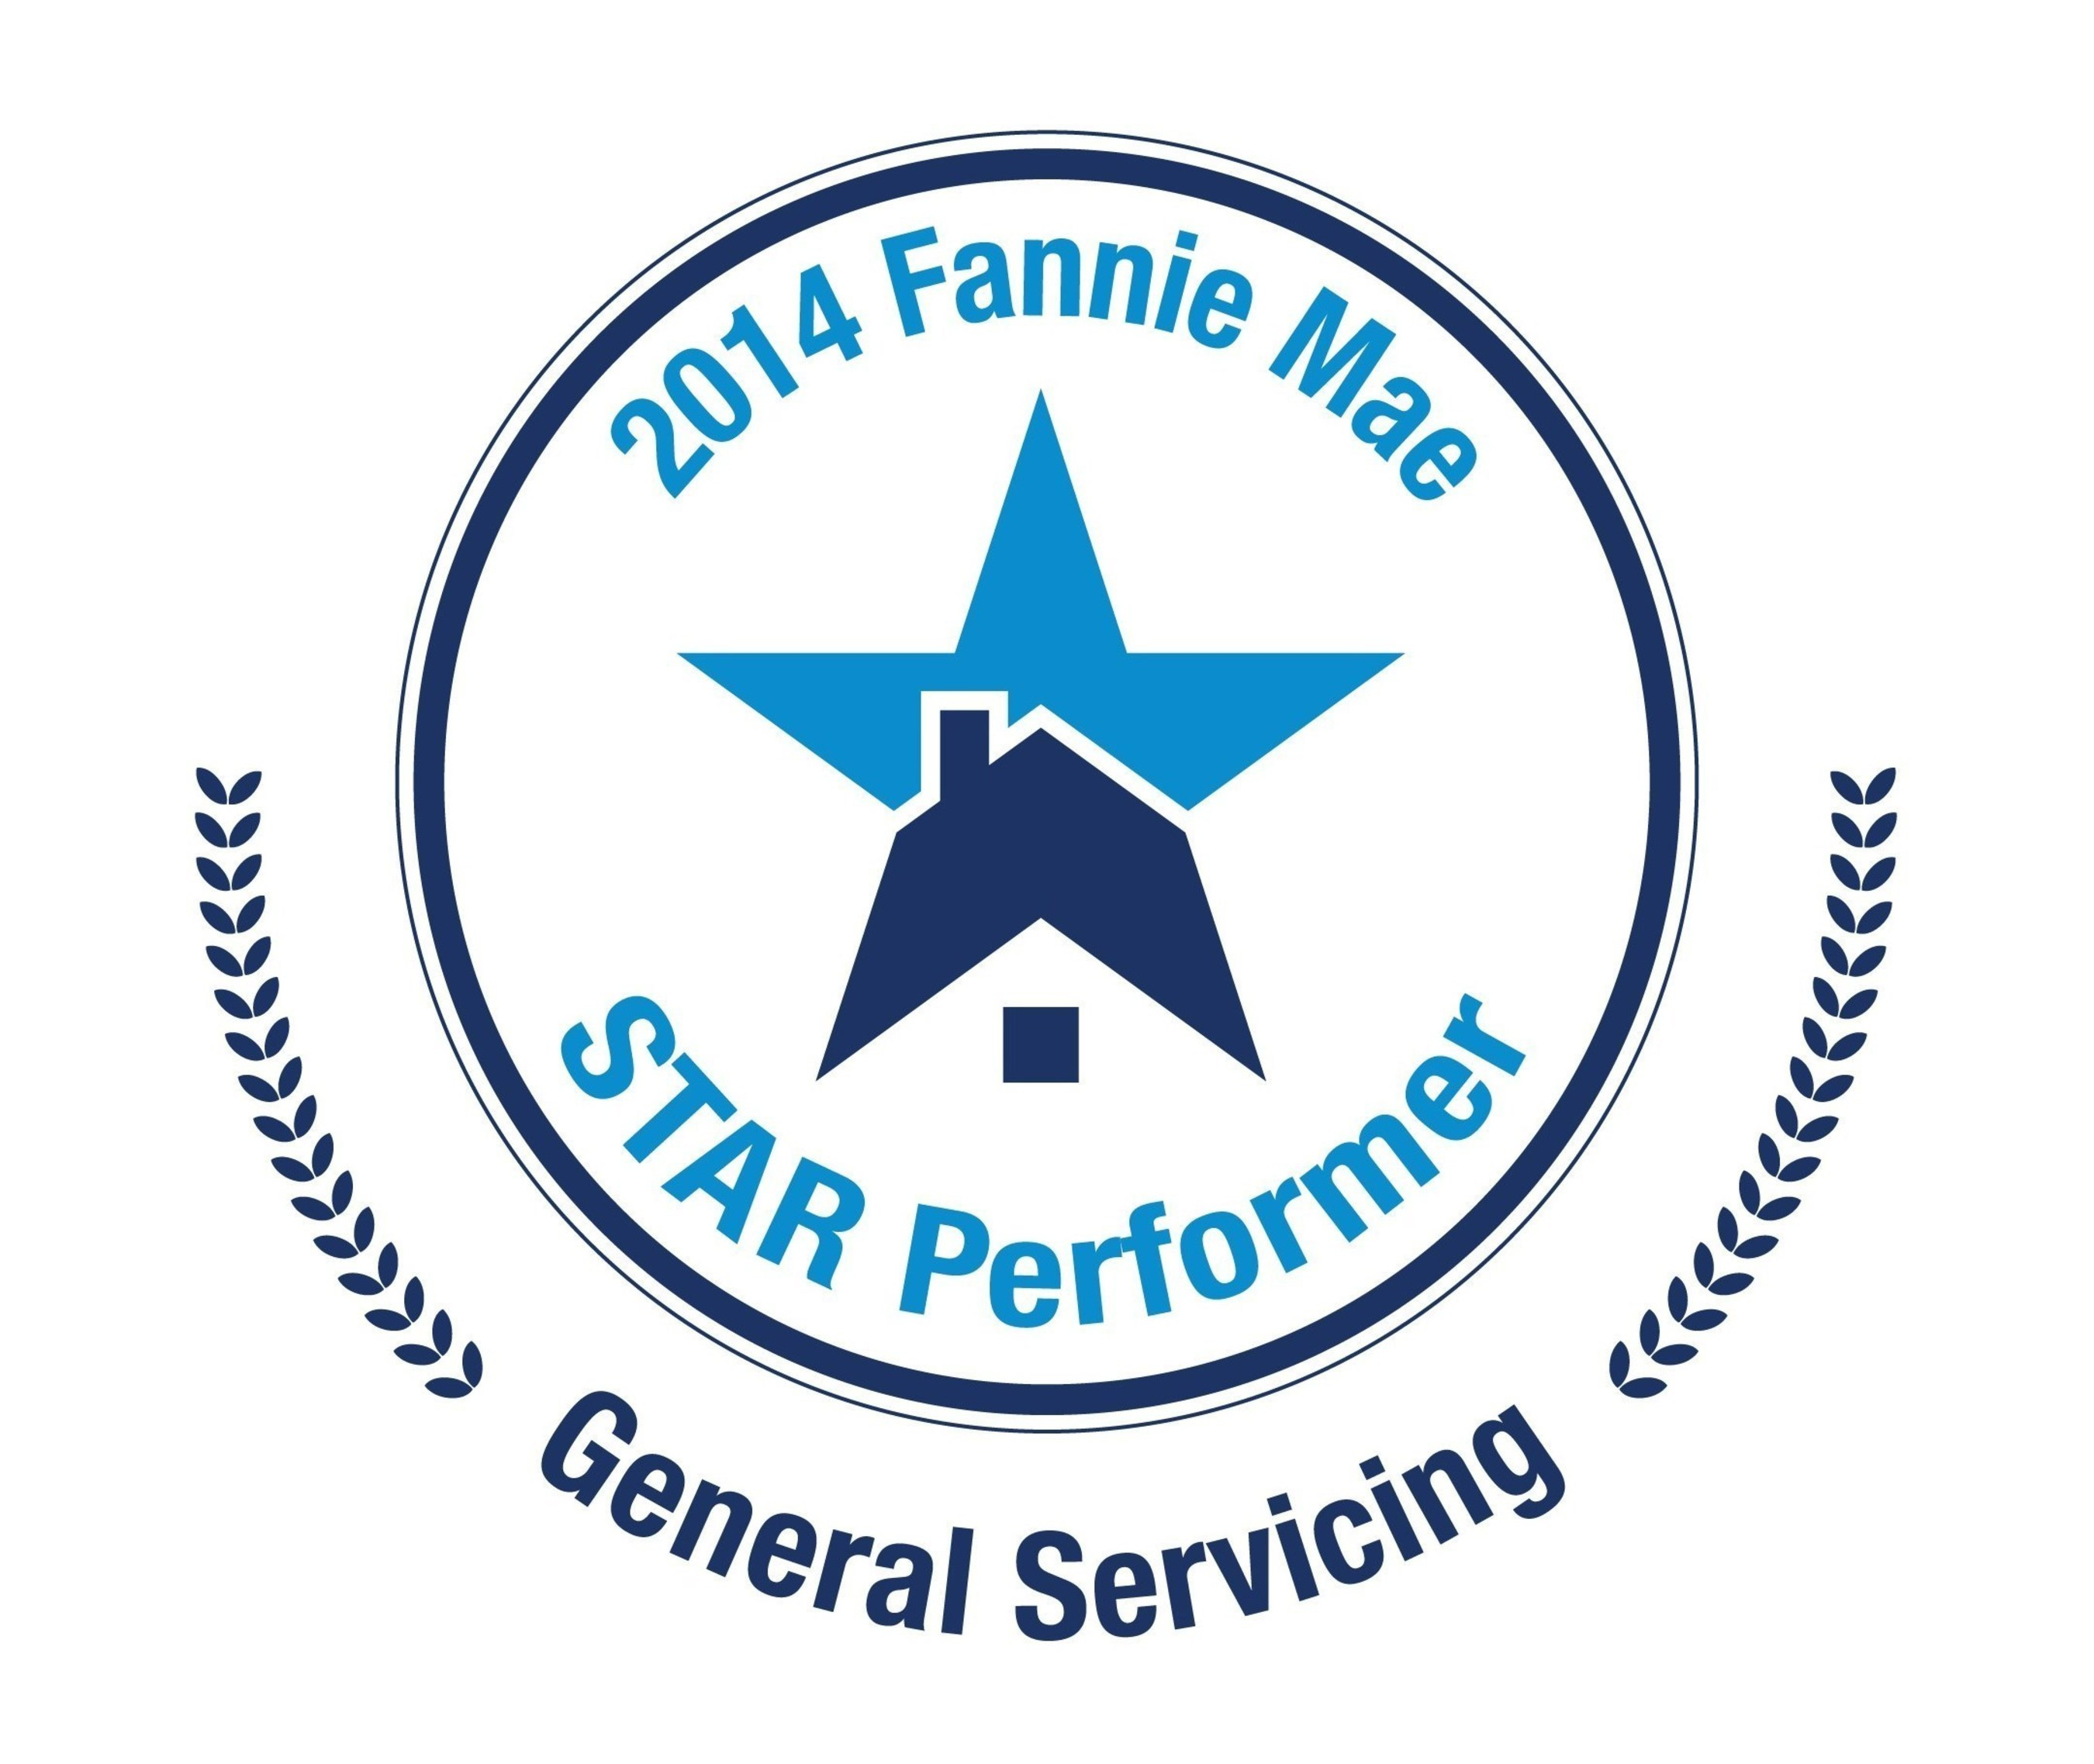 Fannie Mae recognizes Associated Bank as STAR'' Performer for general mortgage servicing